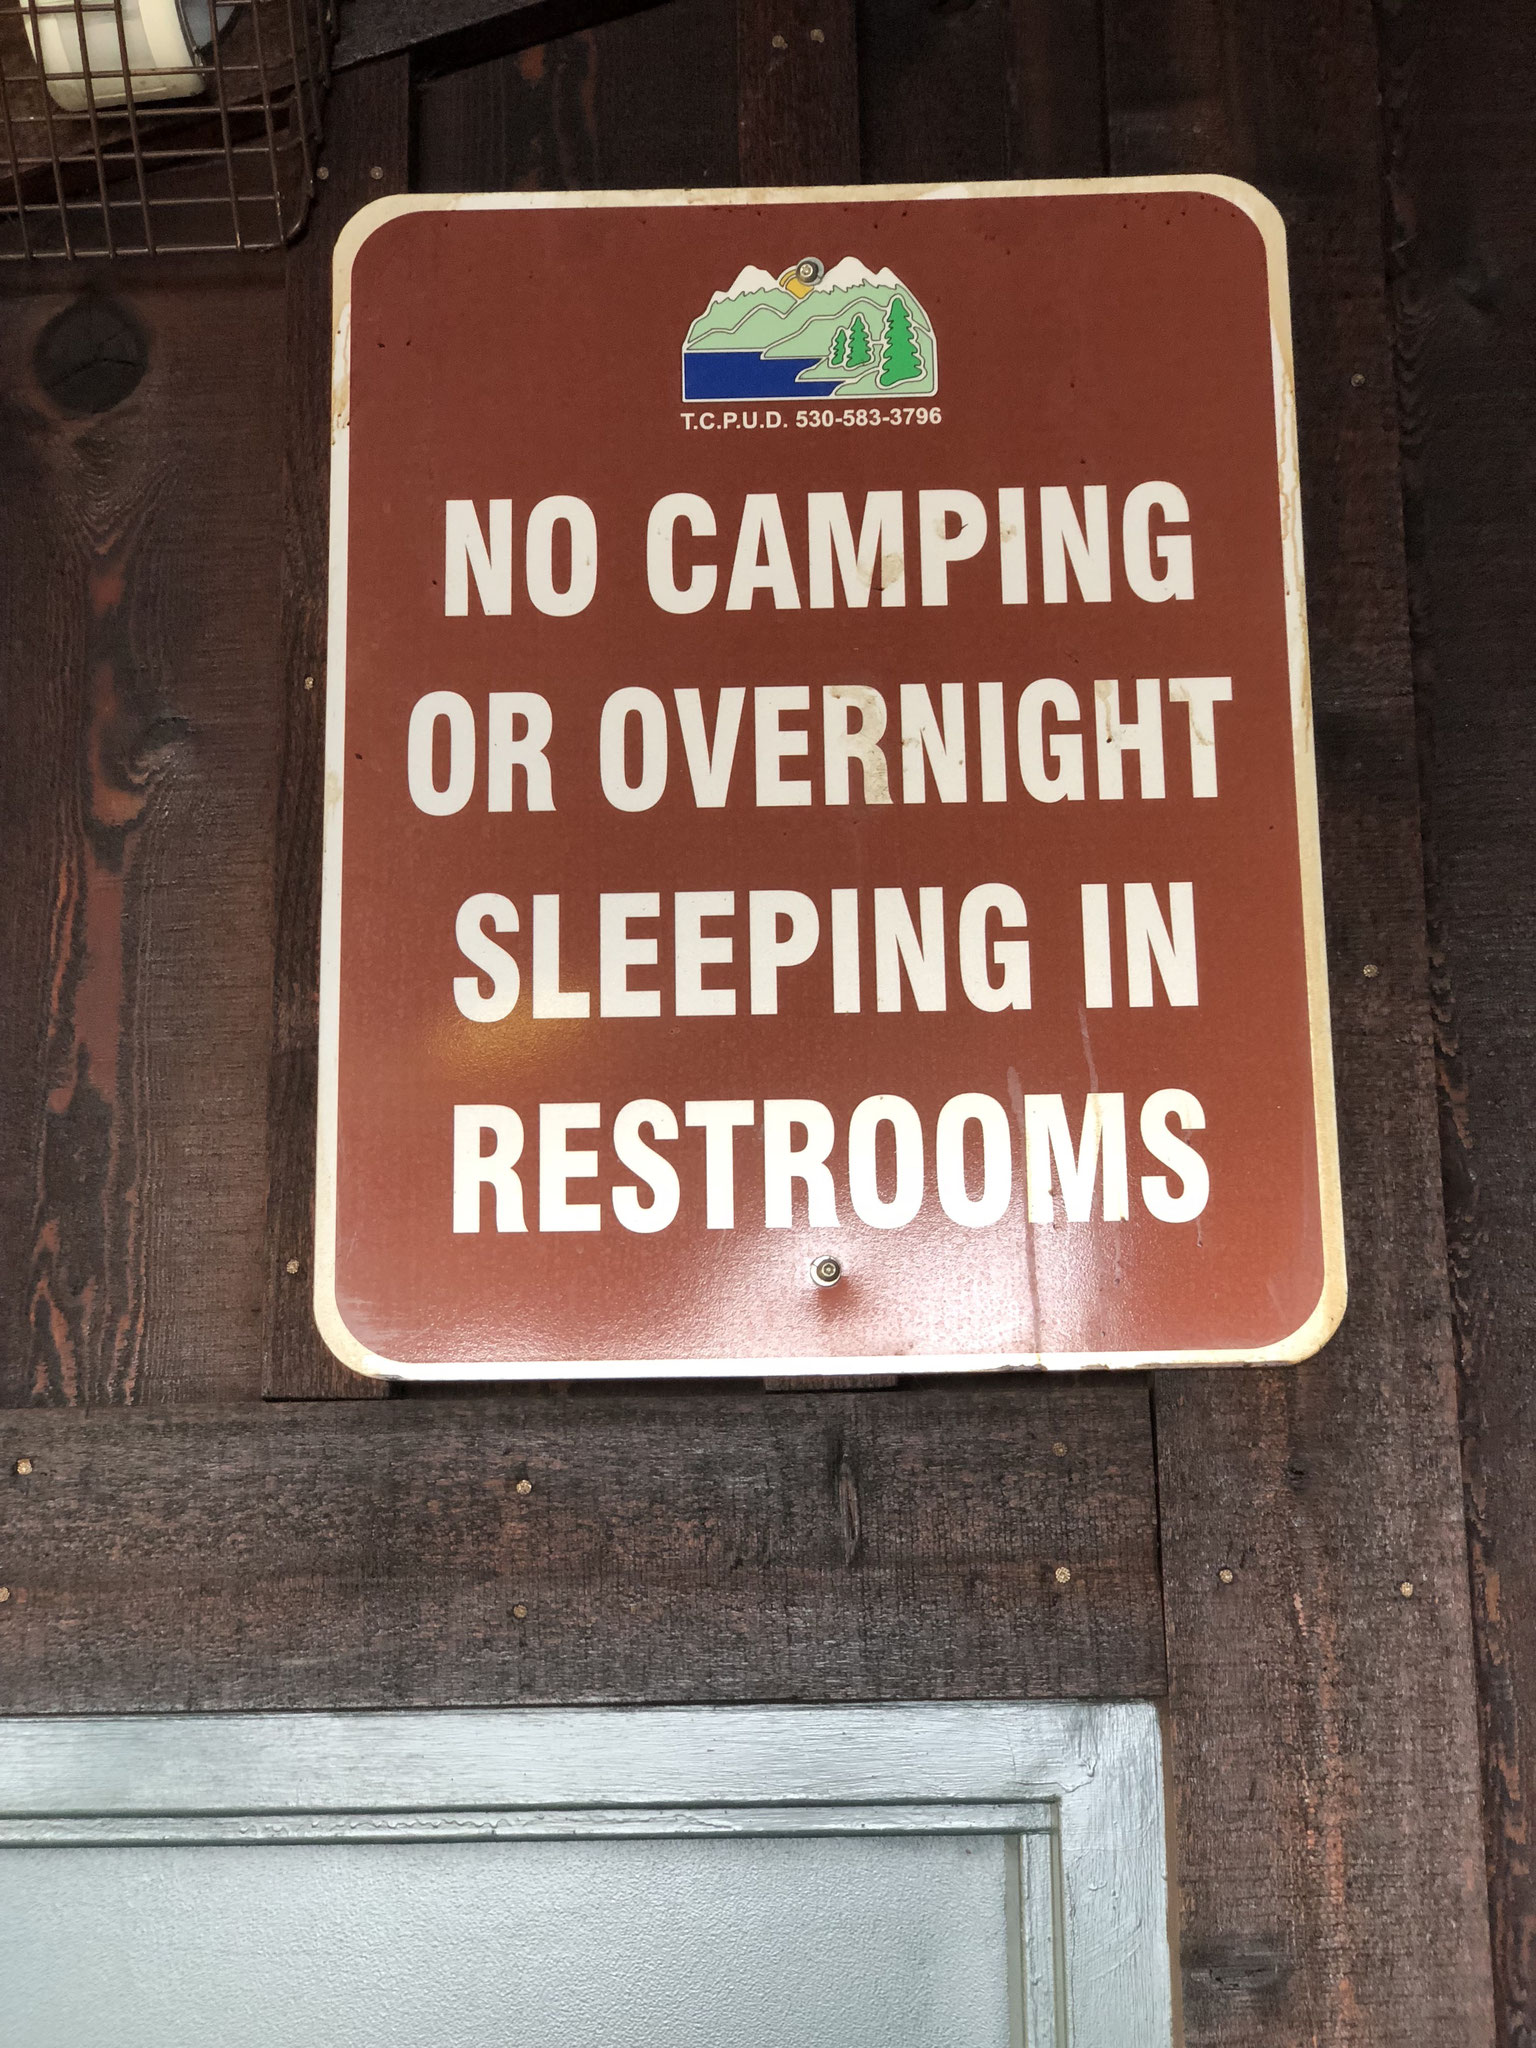 Had I not seen this sign I would have never come up with the idea of camping in a toilet